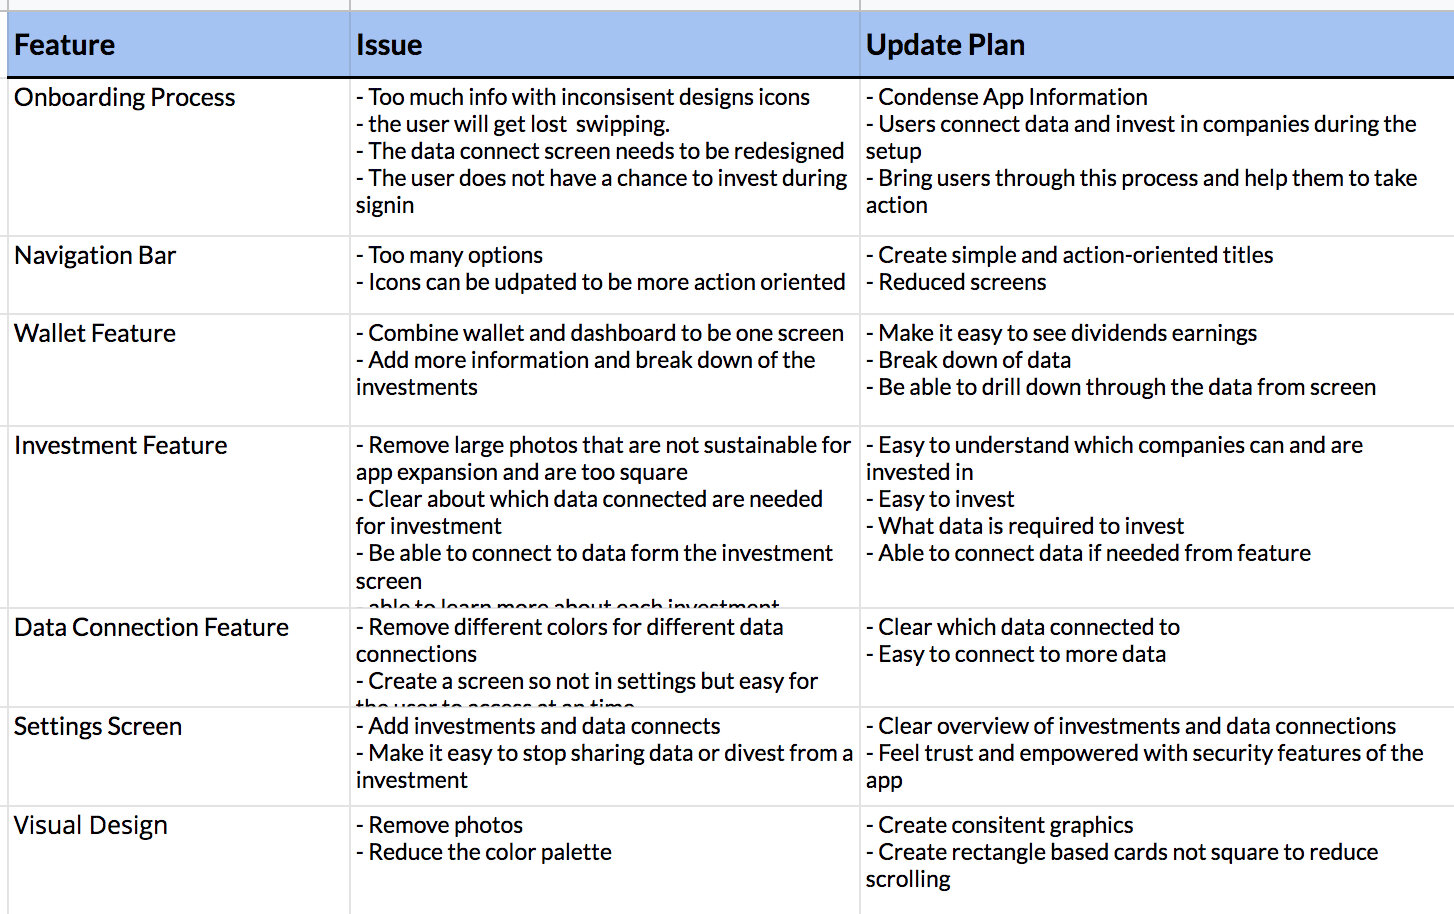 datavest issues and updateplan.jpg